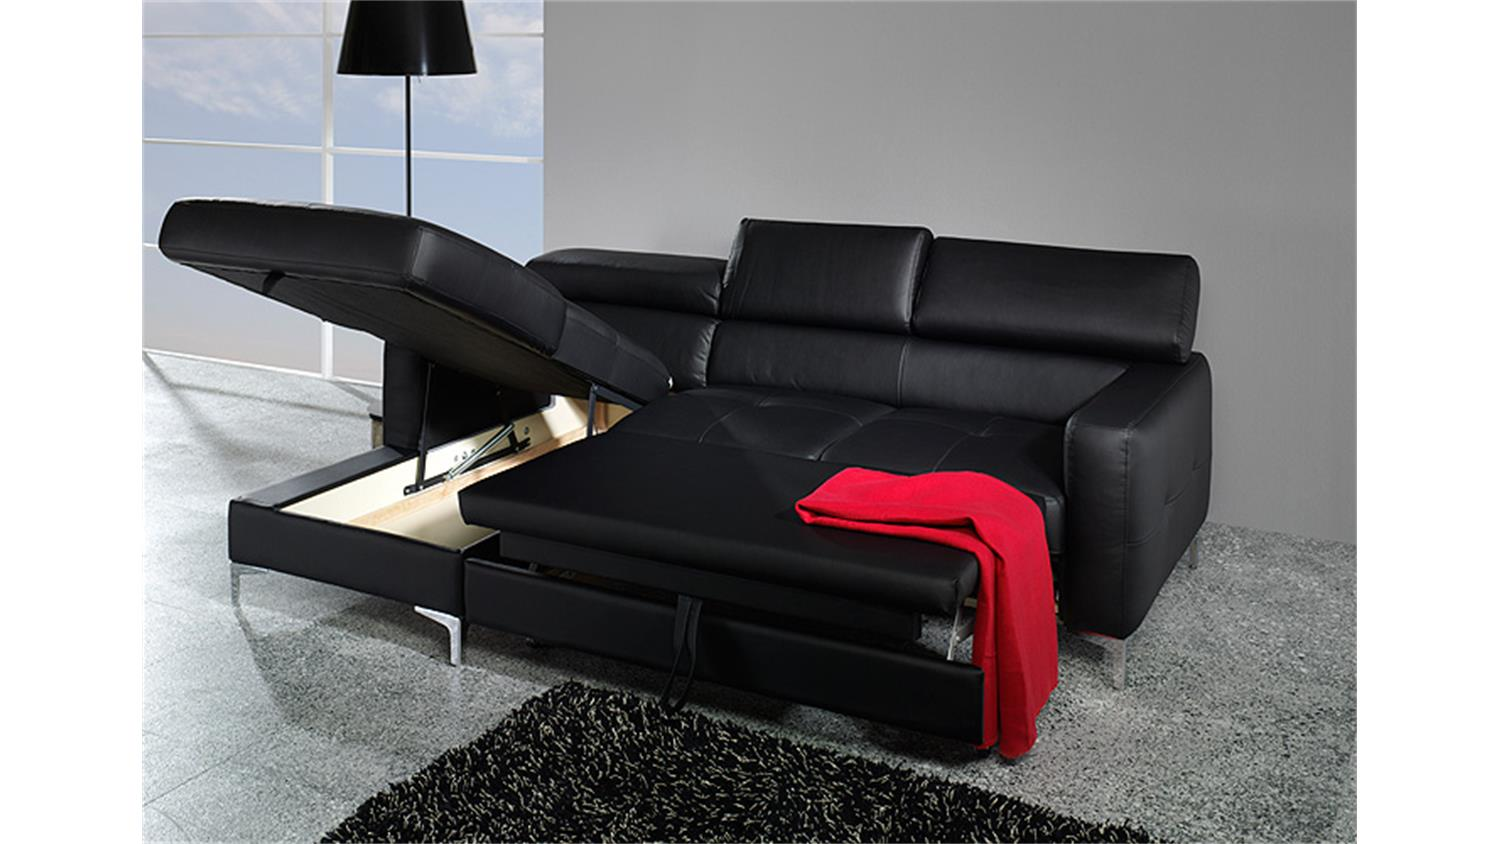 ecksofa sammy sofa polsterecke schwarz mit bettfunktion. Black Bedroom Furniture Sets. Home Design Ideas